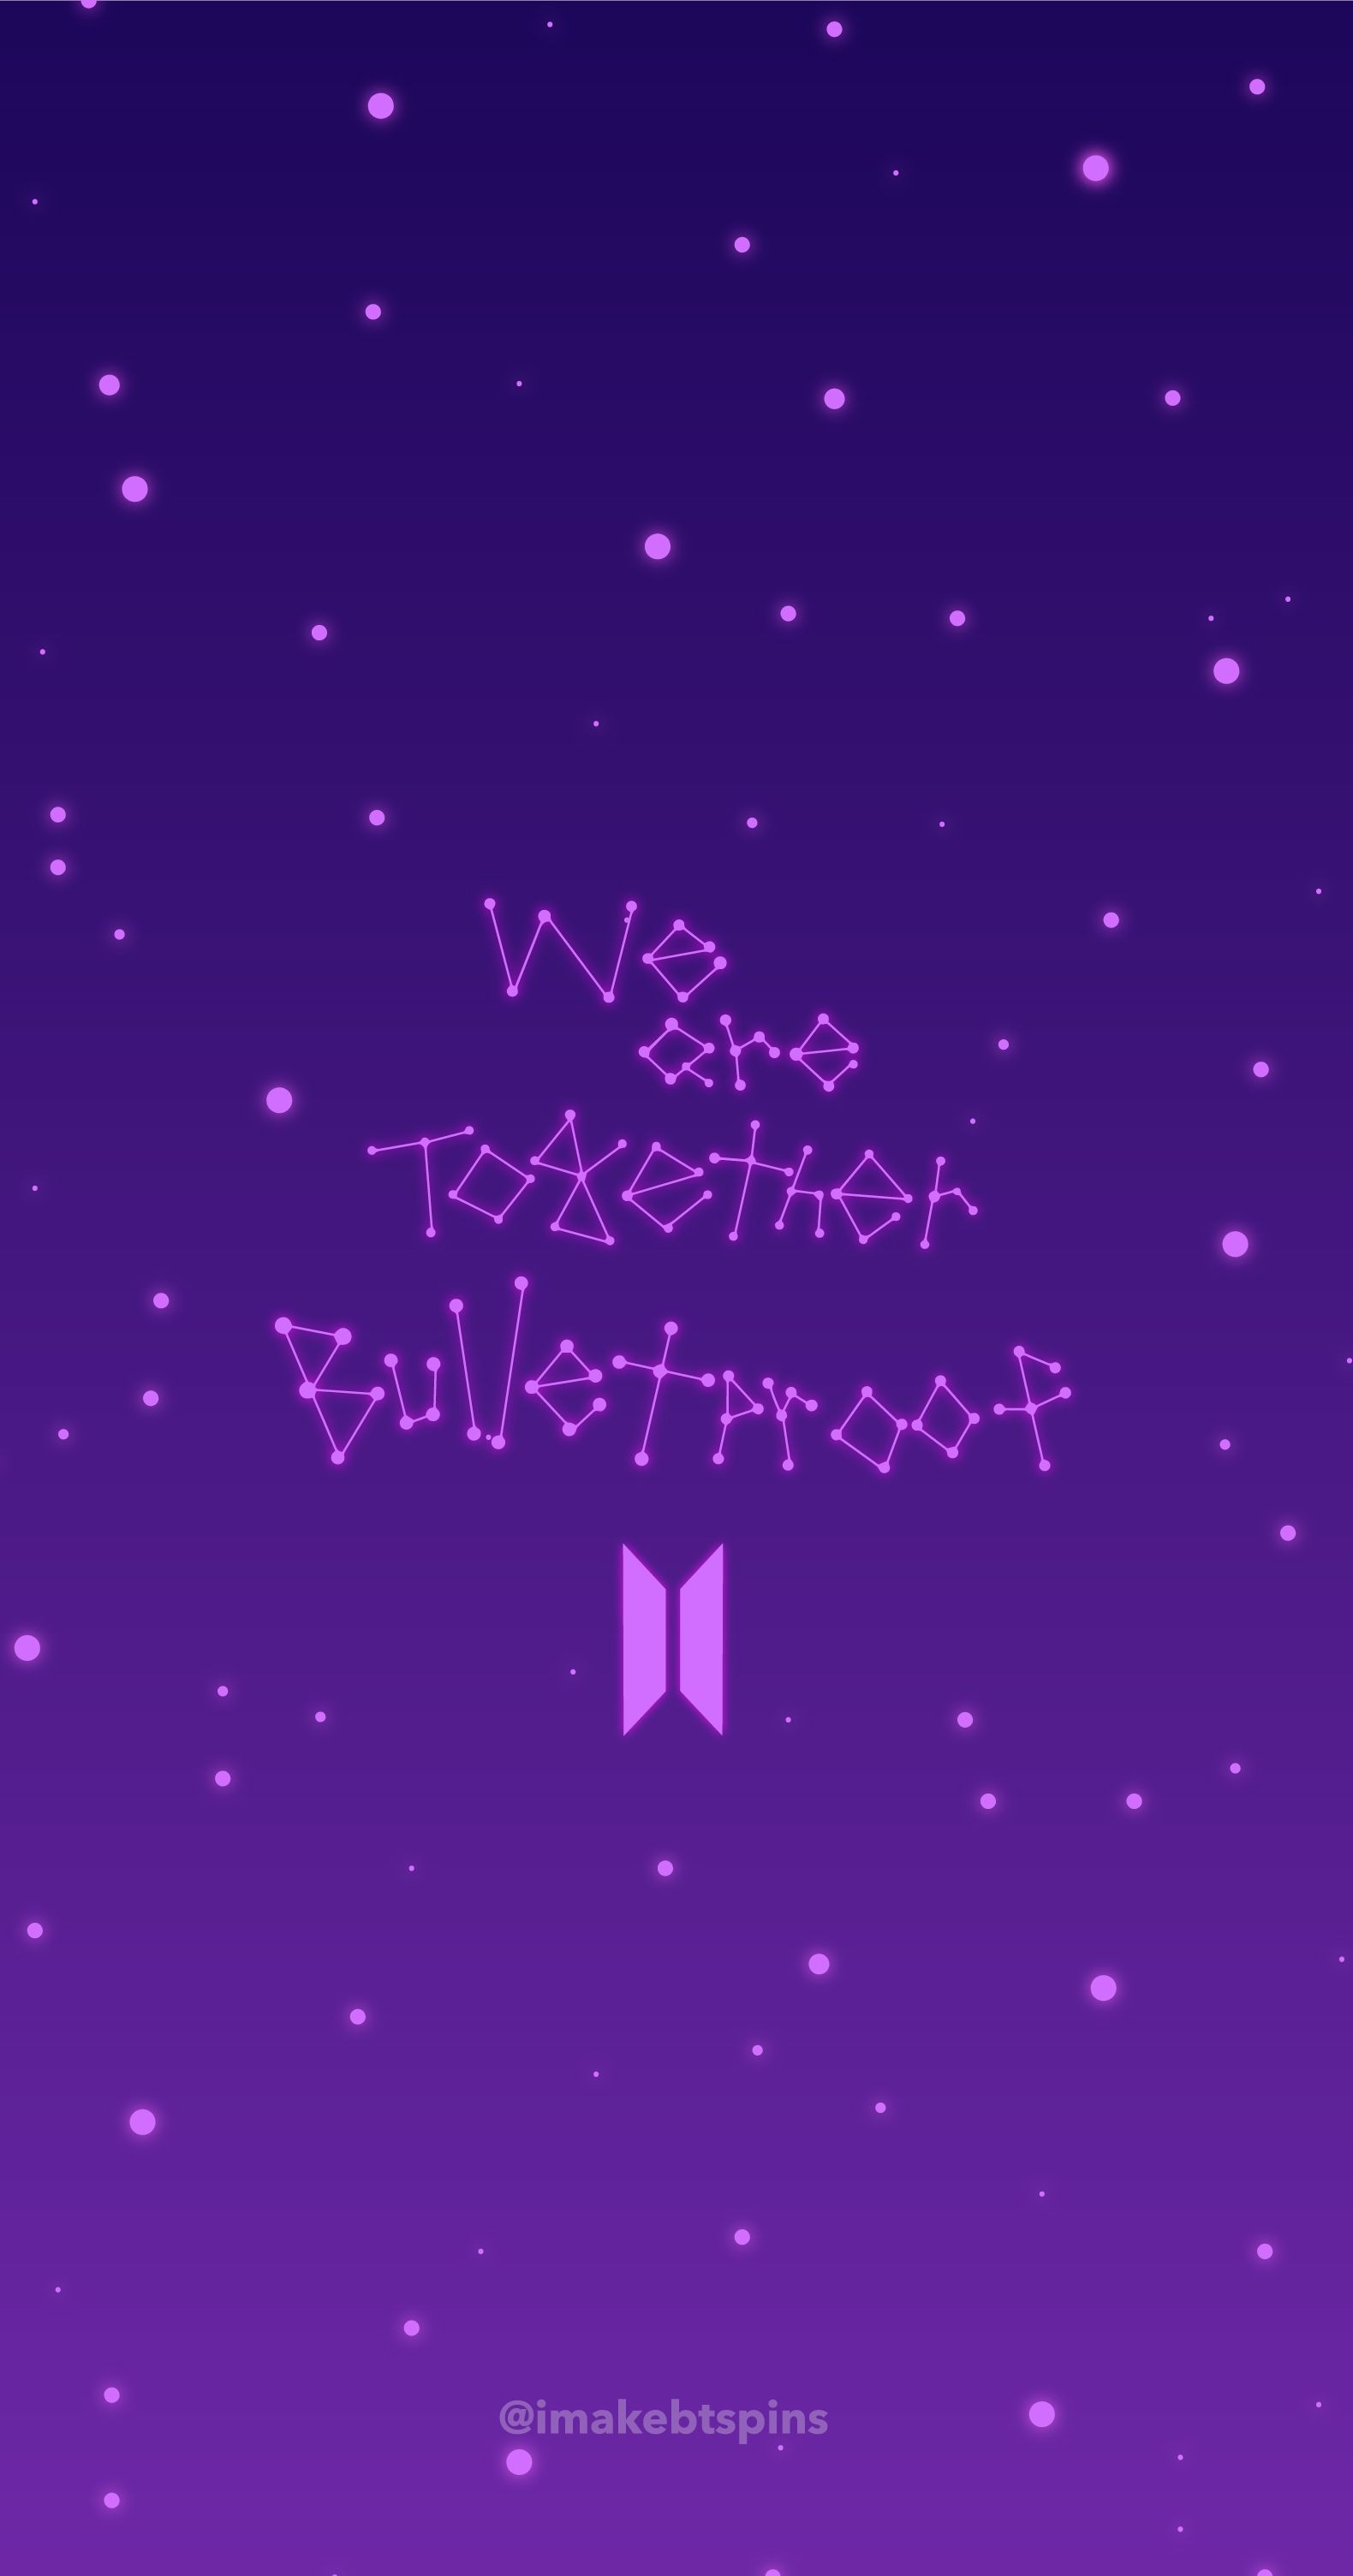 Bts We Are Bulletproof The Eternal In 2020 Iphone Wallpaper Bts Bts Aesthetic Wallpaper For Phone Bts Wallpaper